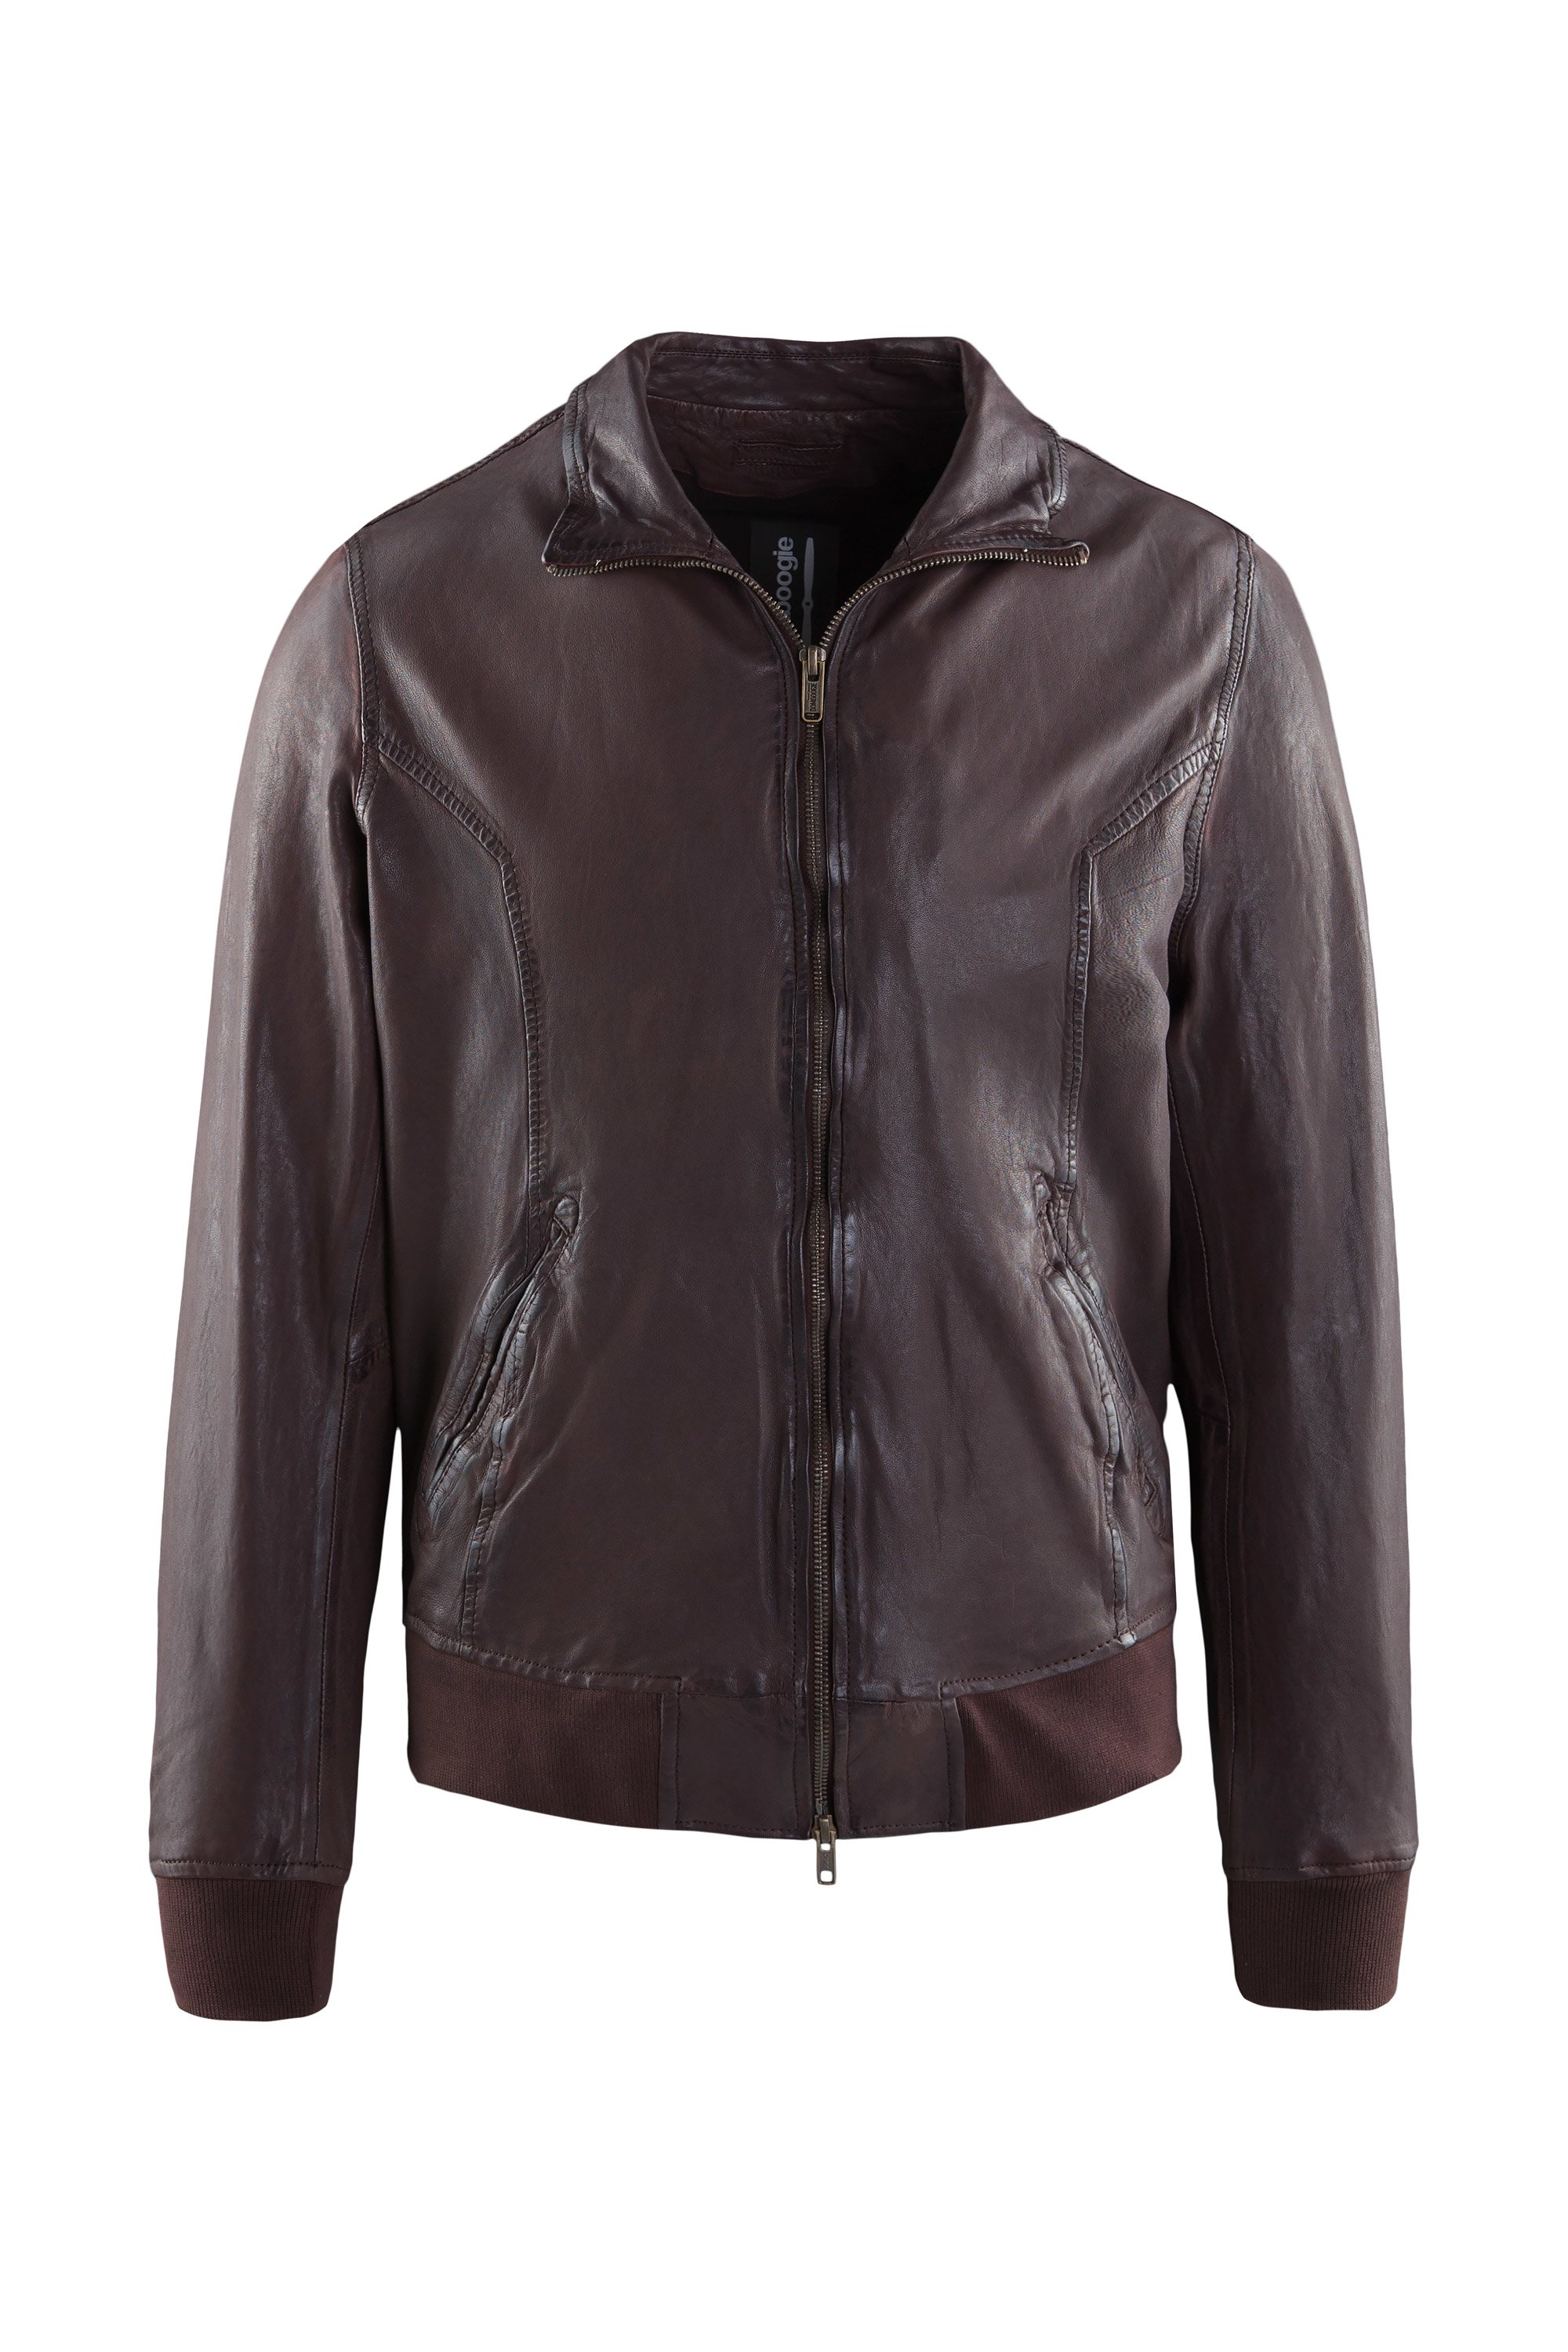 Chel Leather Jacket